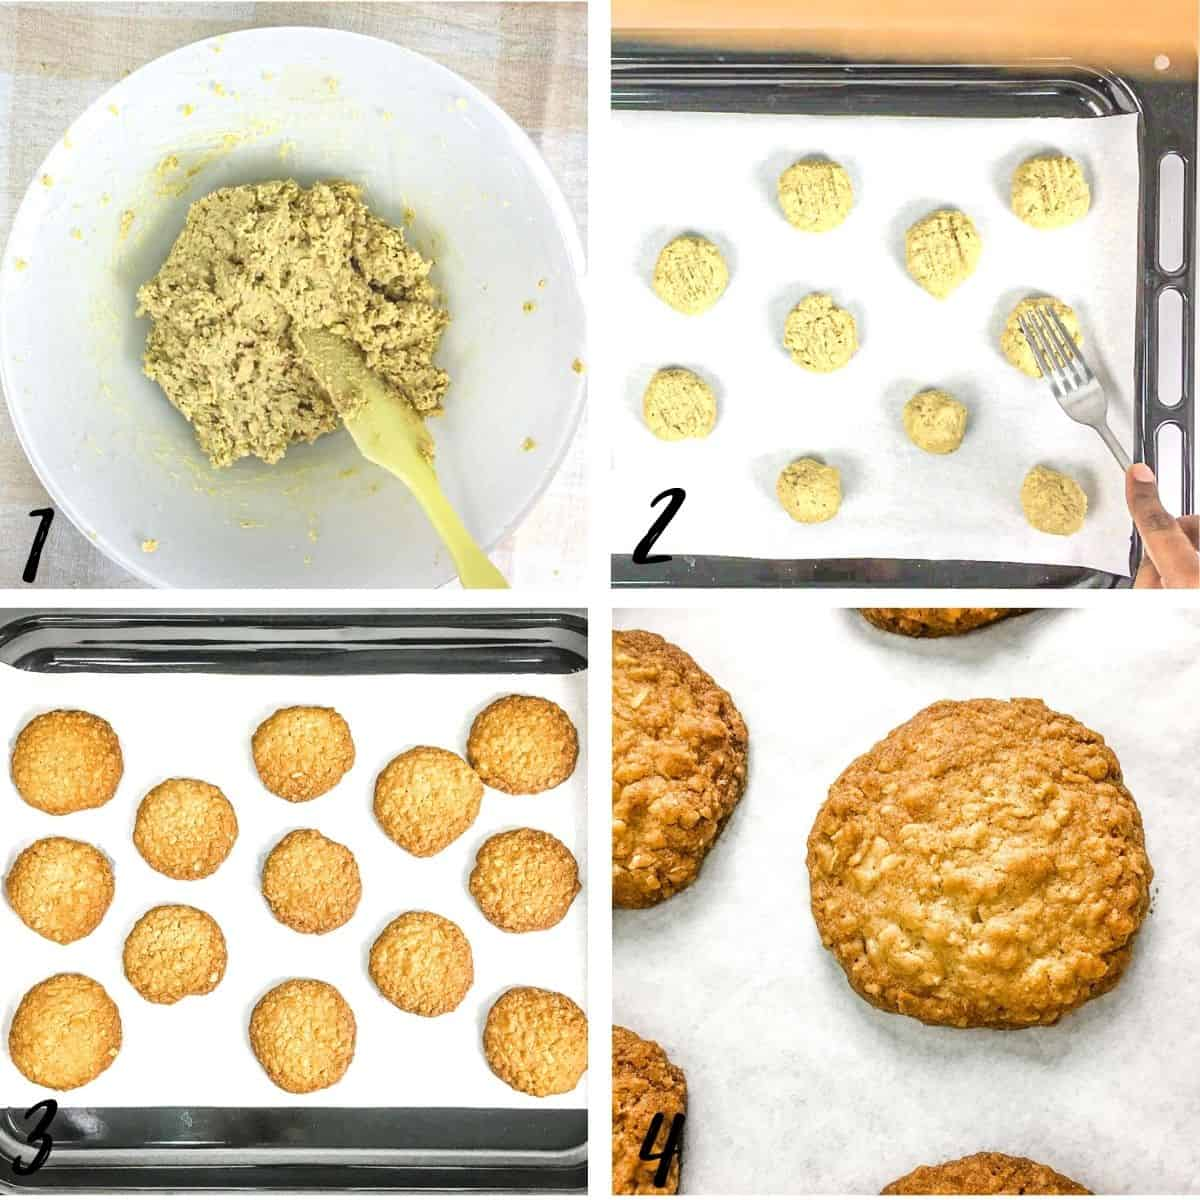 A poster of 4 images showing how to shaped cookies into balls and flatten them with a fork